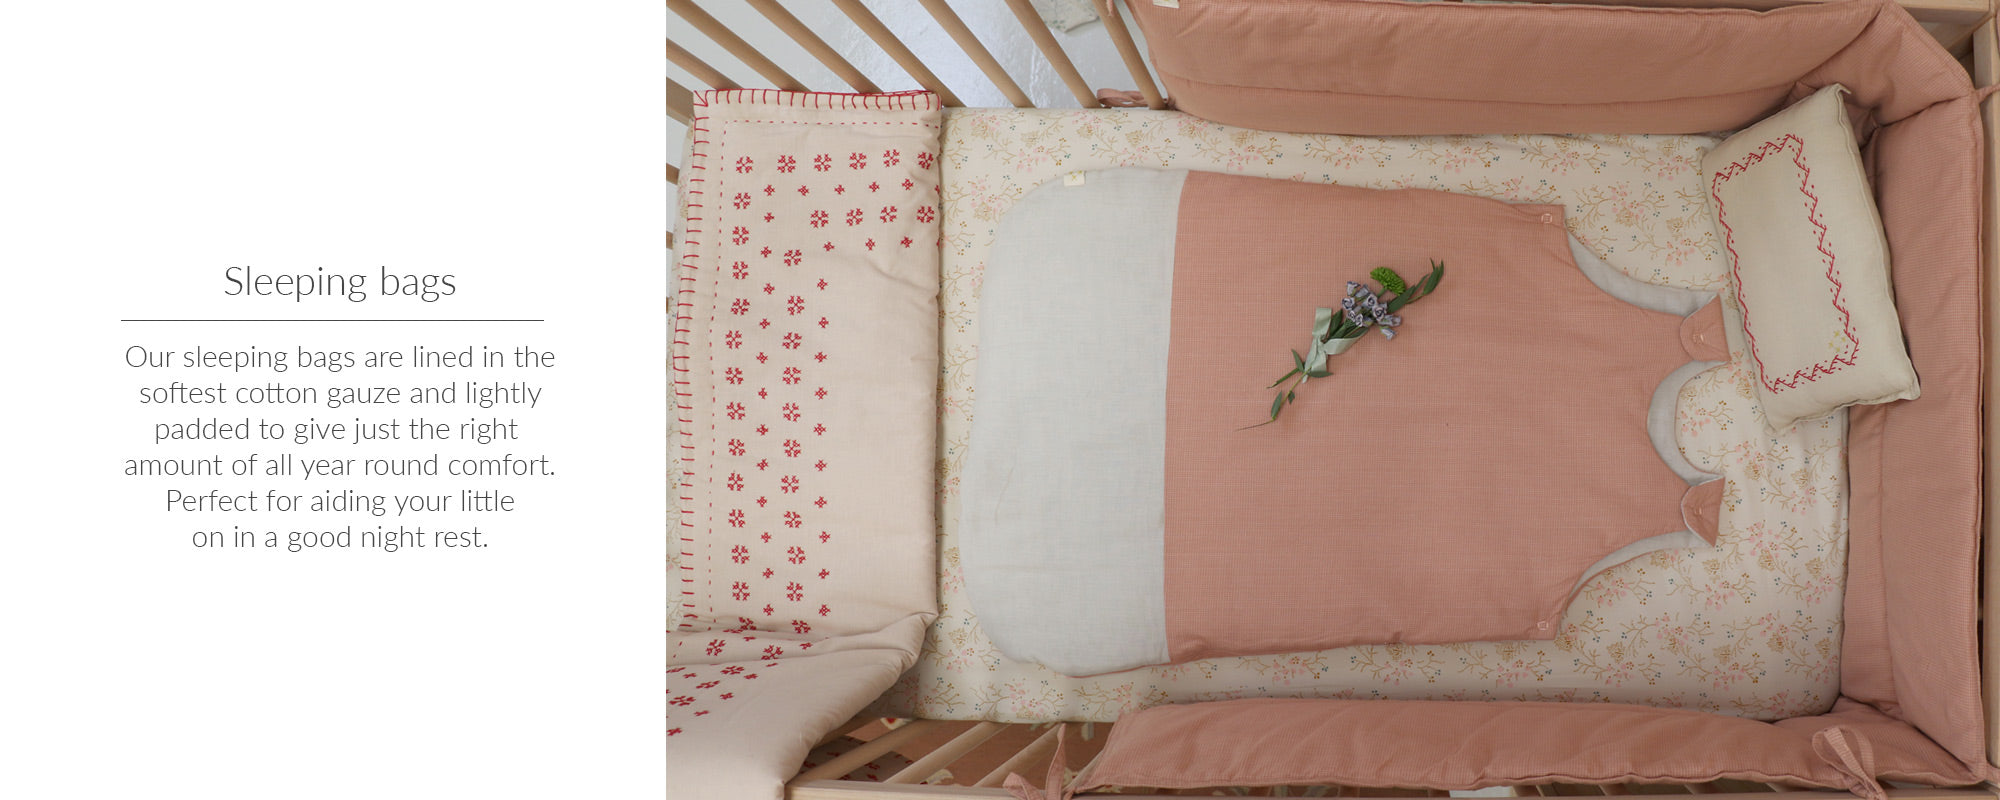 baby sleeping bags by camomile london